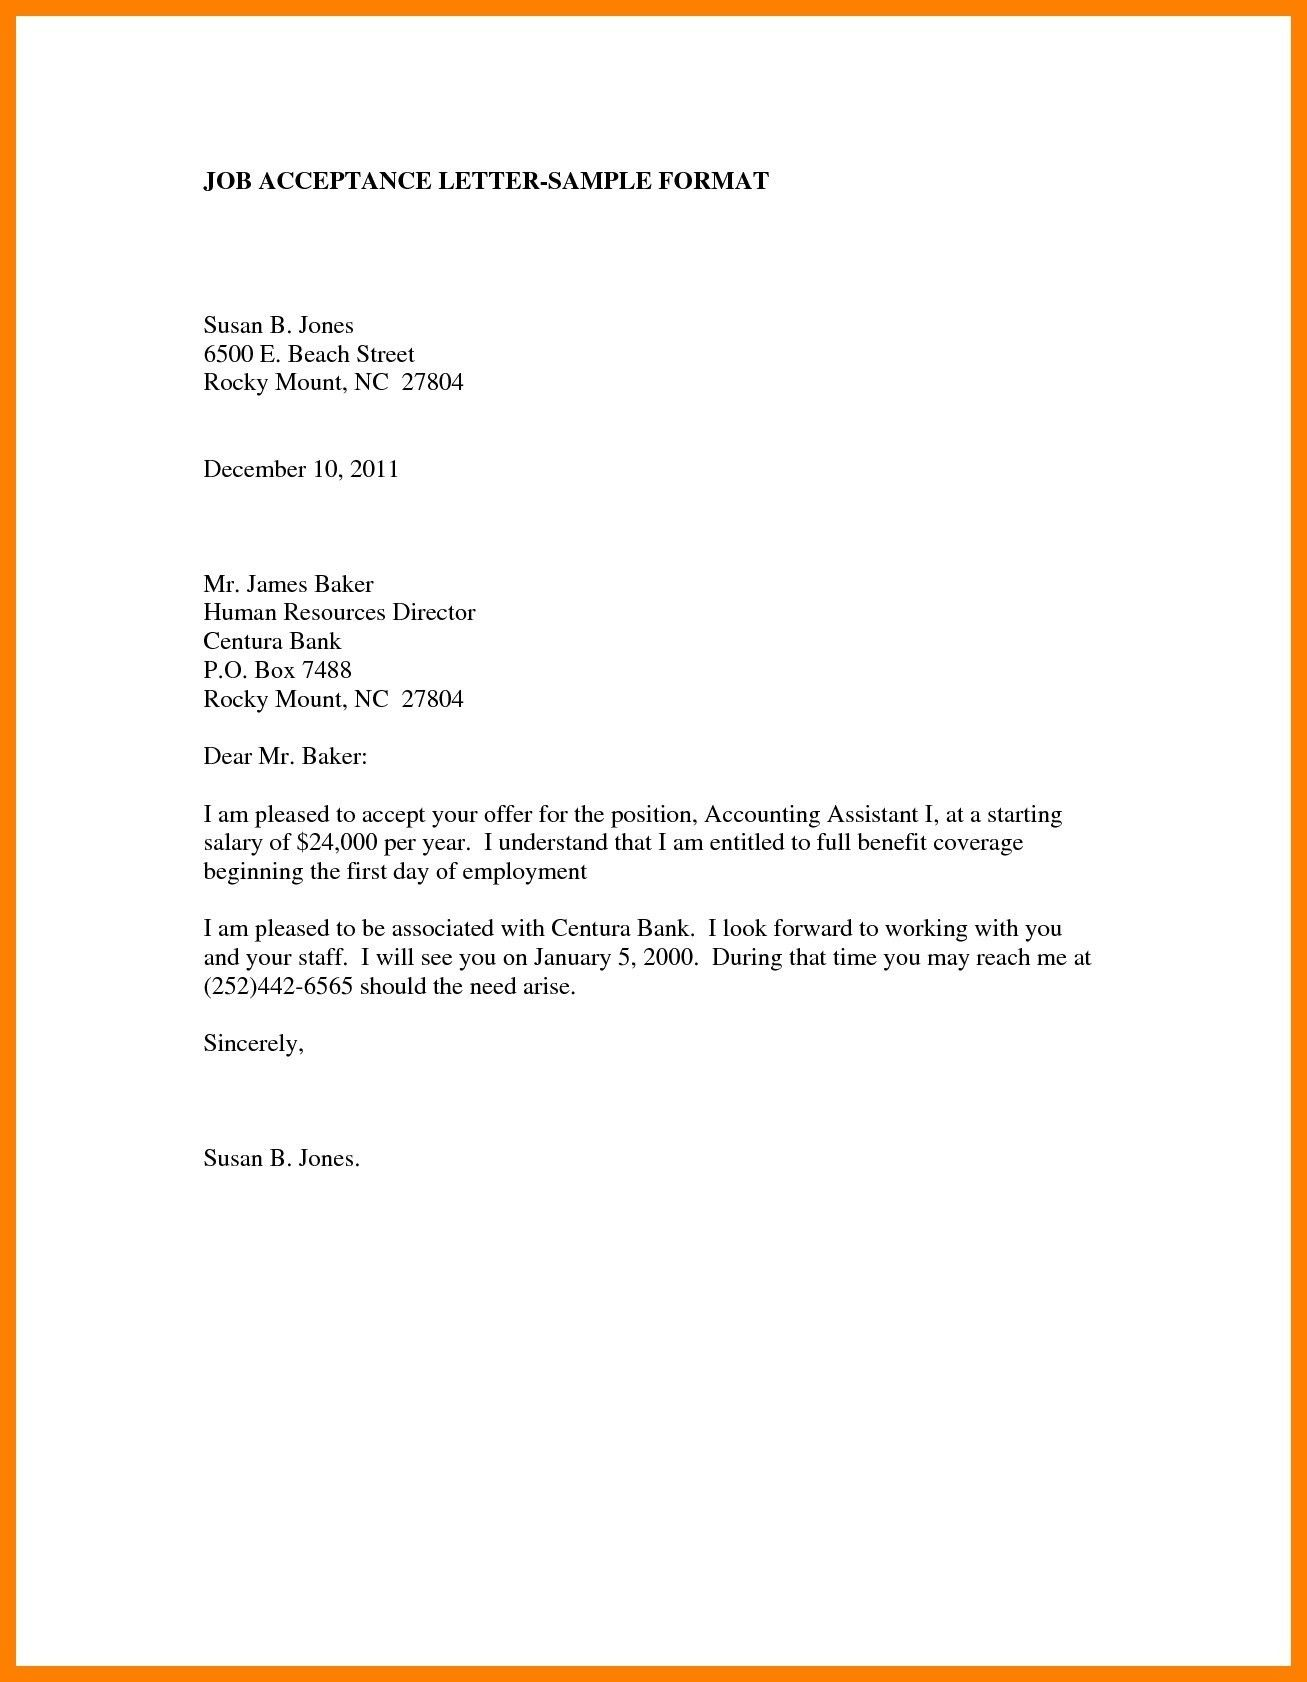 New Job Offer Acceptance Letter Example you can download for full